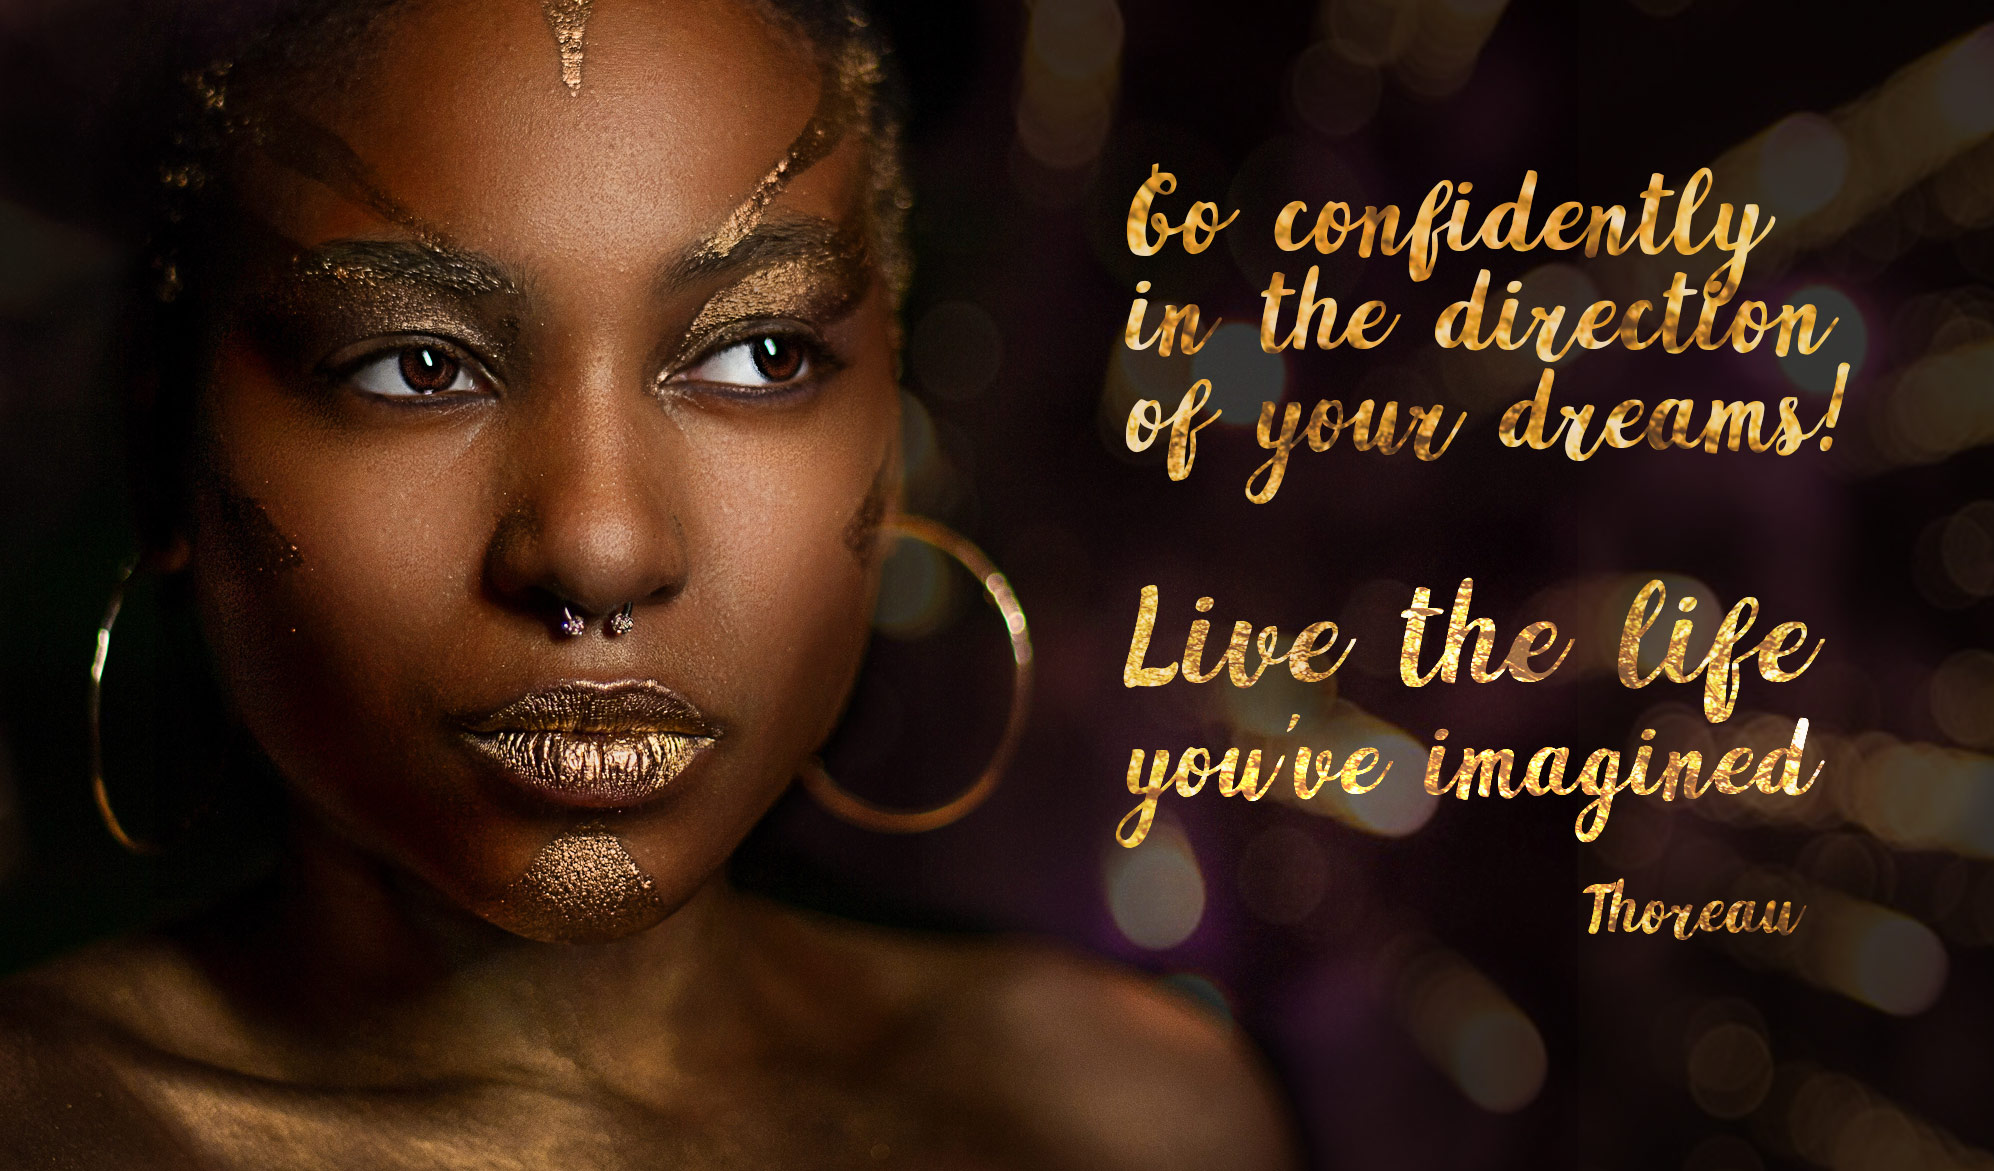 daily inspirational quote image: close up of a beautiful woman with darker skin and gold make-up